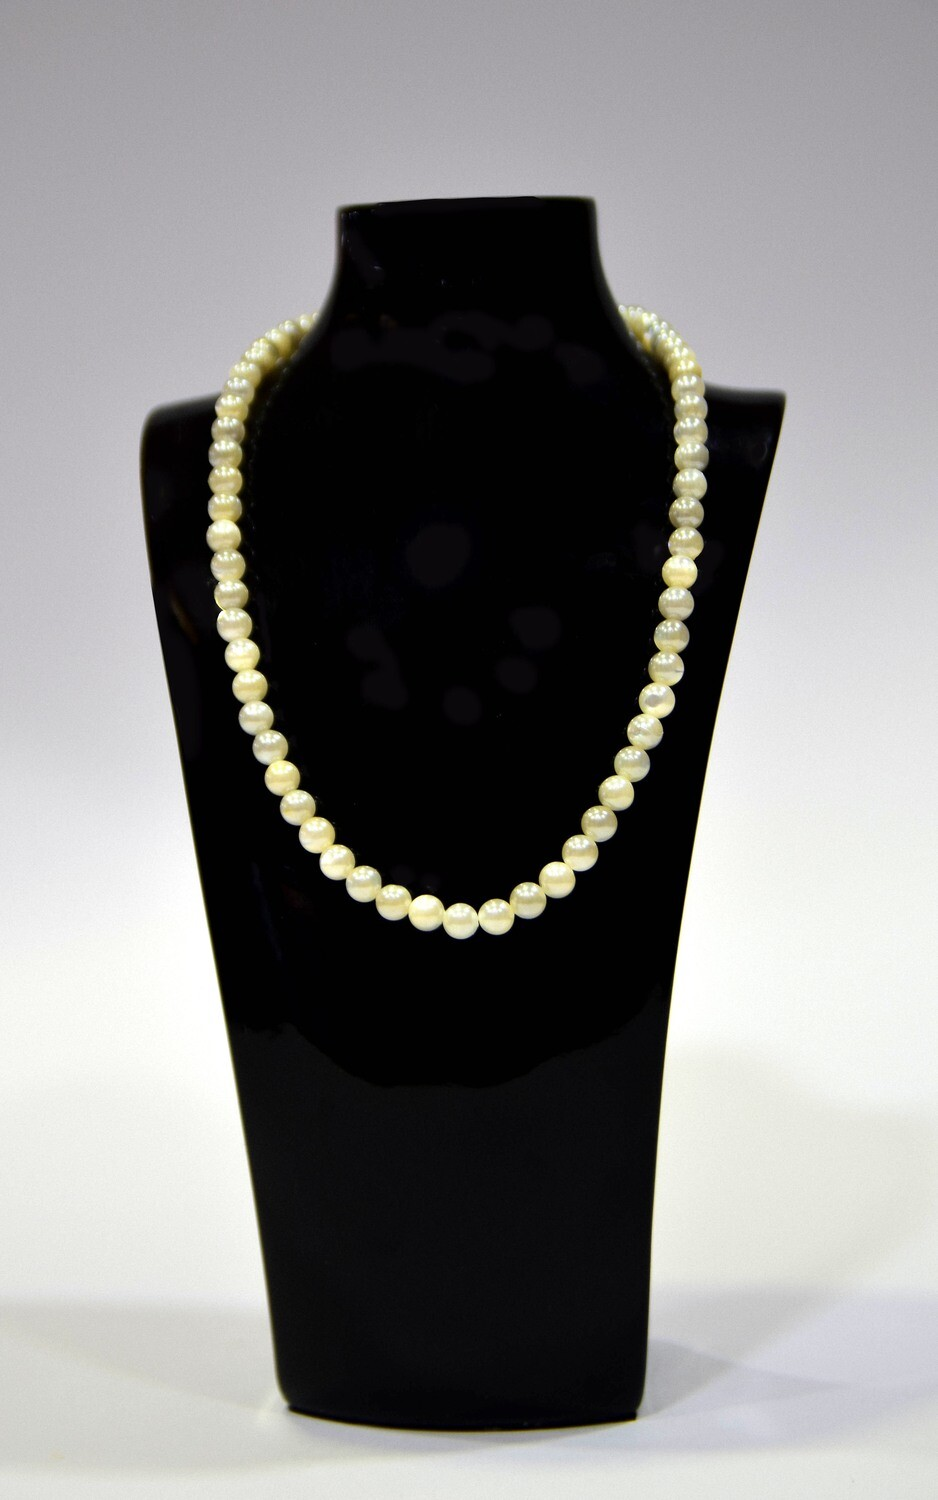 Necklace OBTA - 11